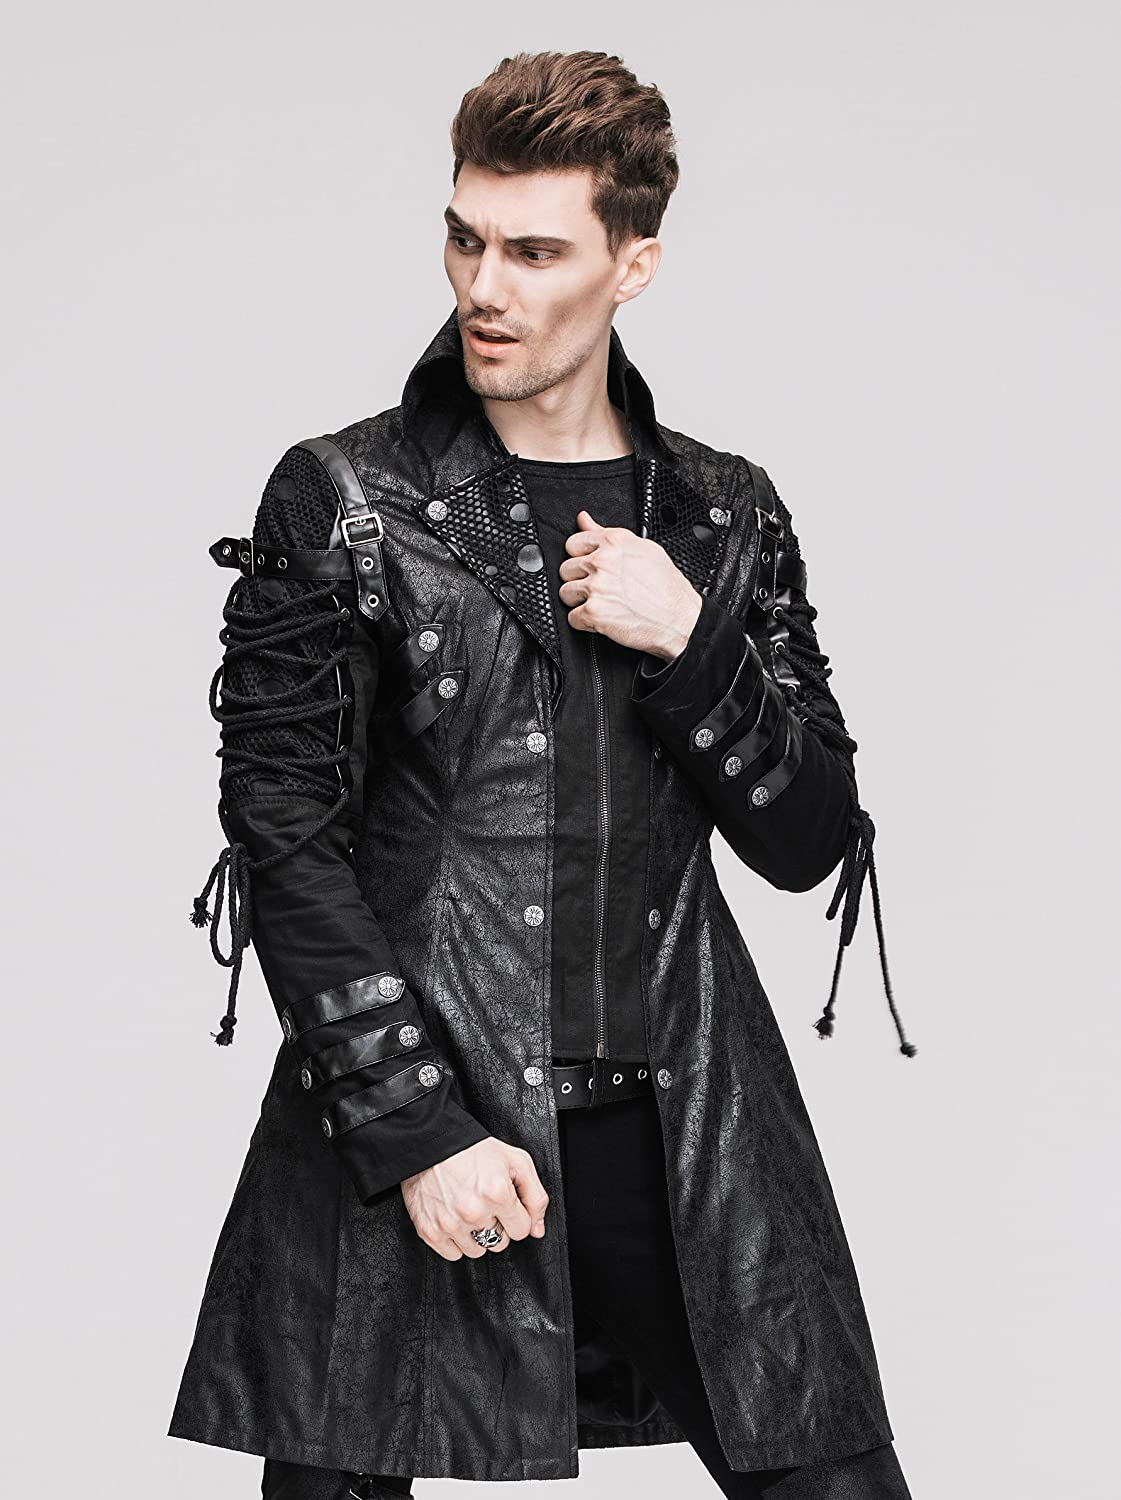 Men's Steampunk Jackets, Coats & Suits Steampunk Coat Gothic Clothing Victorian Cyberpunk Punk Jacket Renaissance Costume $168.99 AT vintagedancer.com